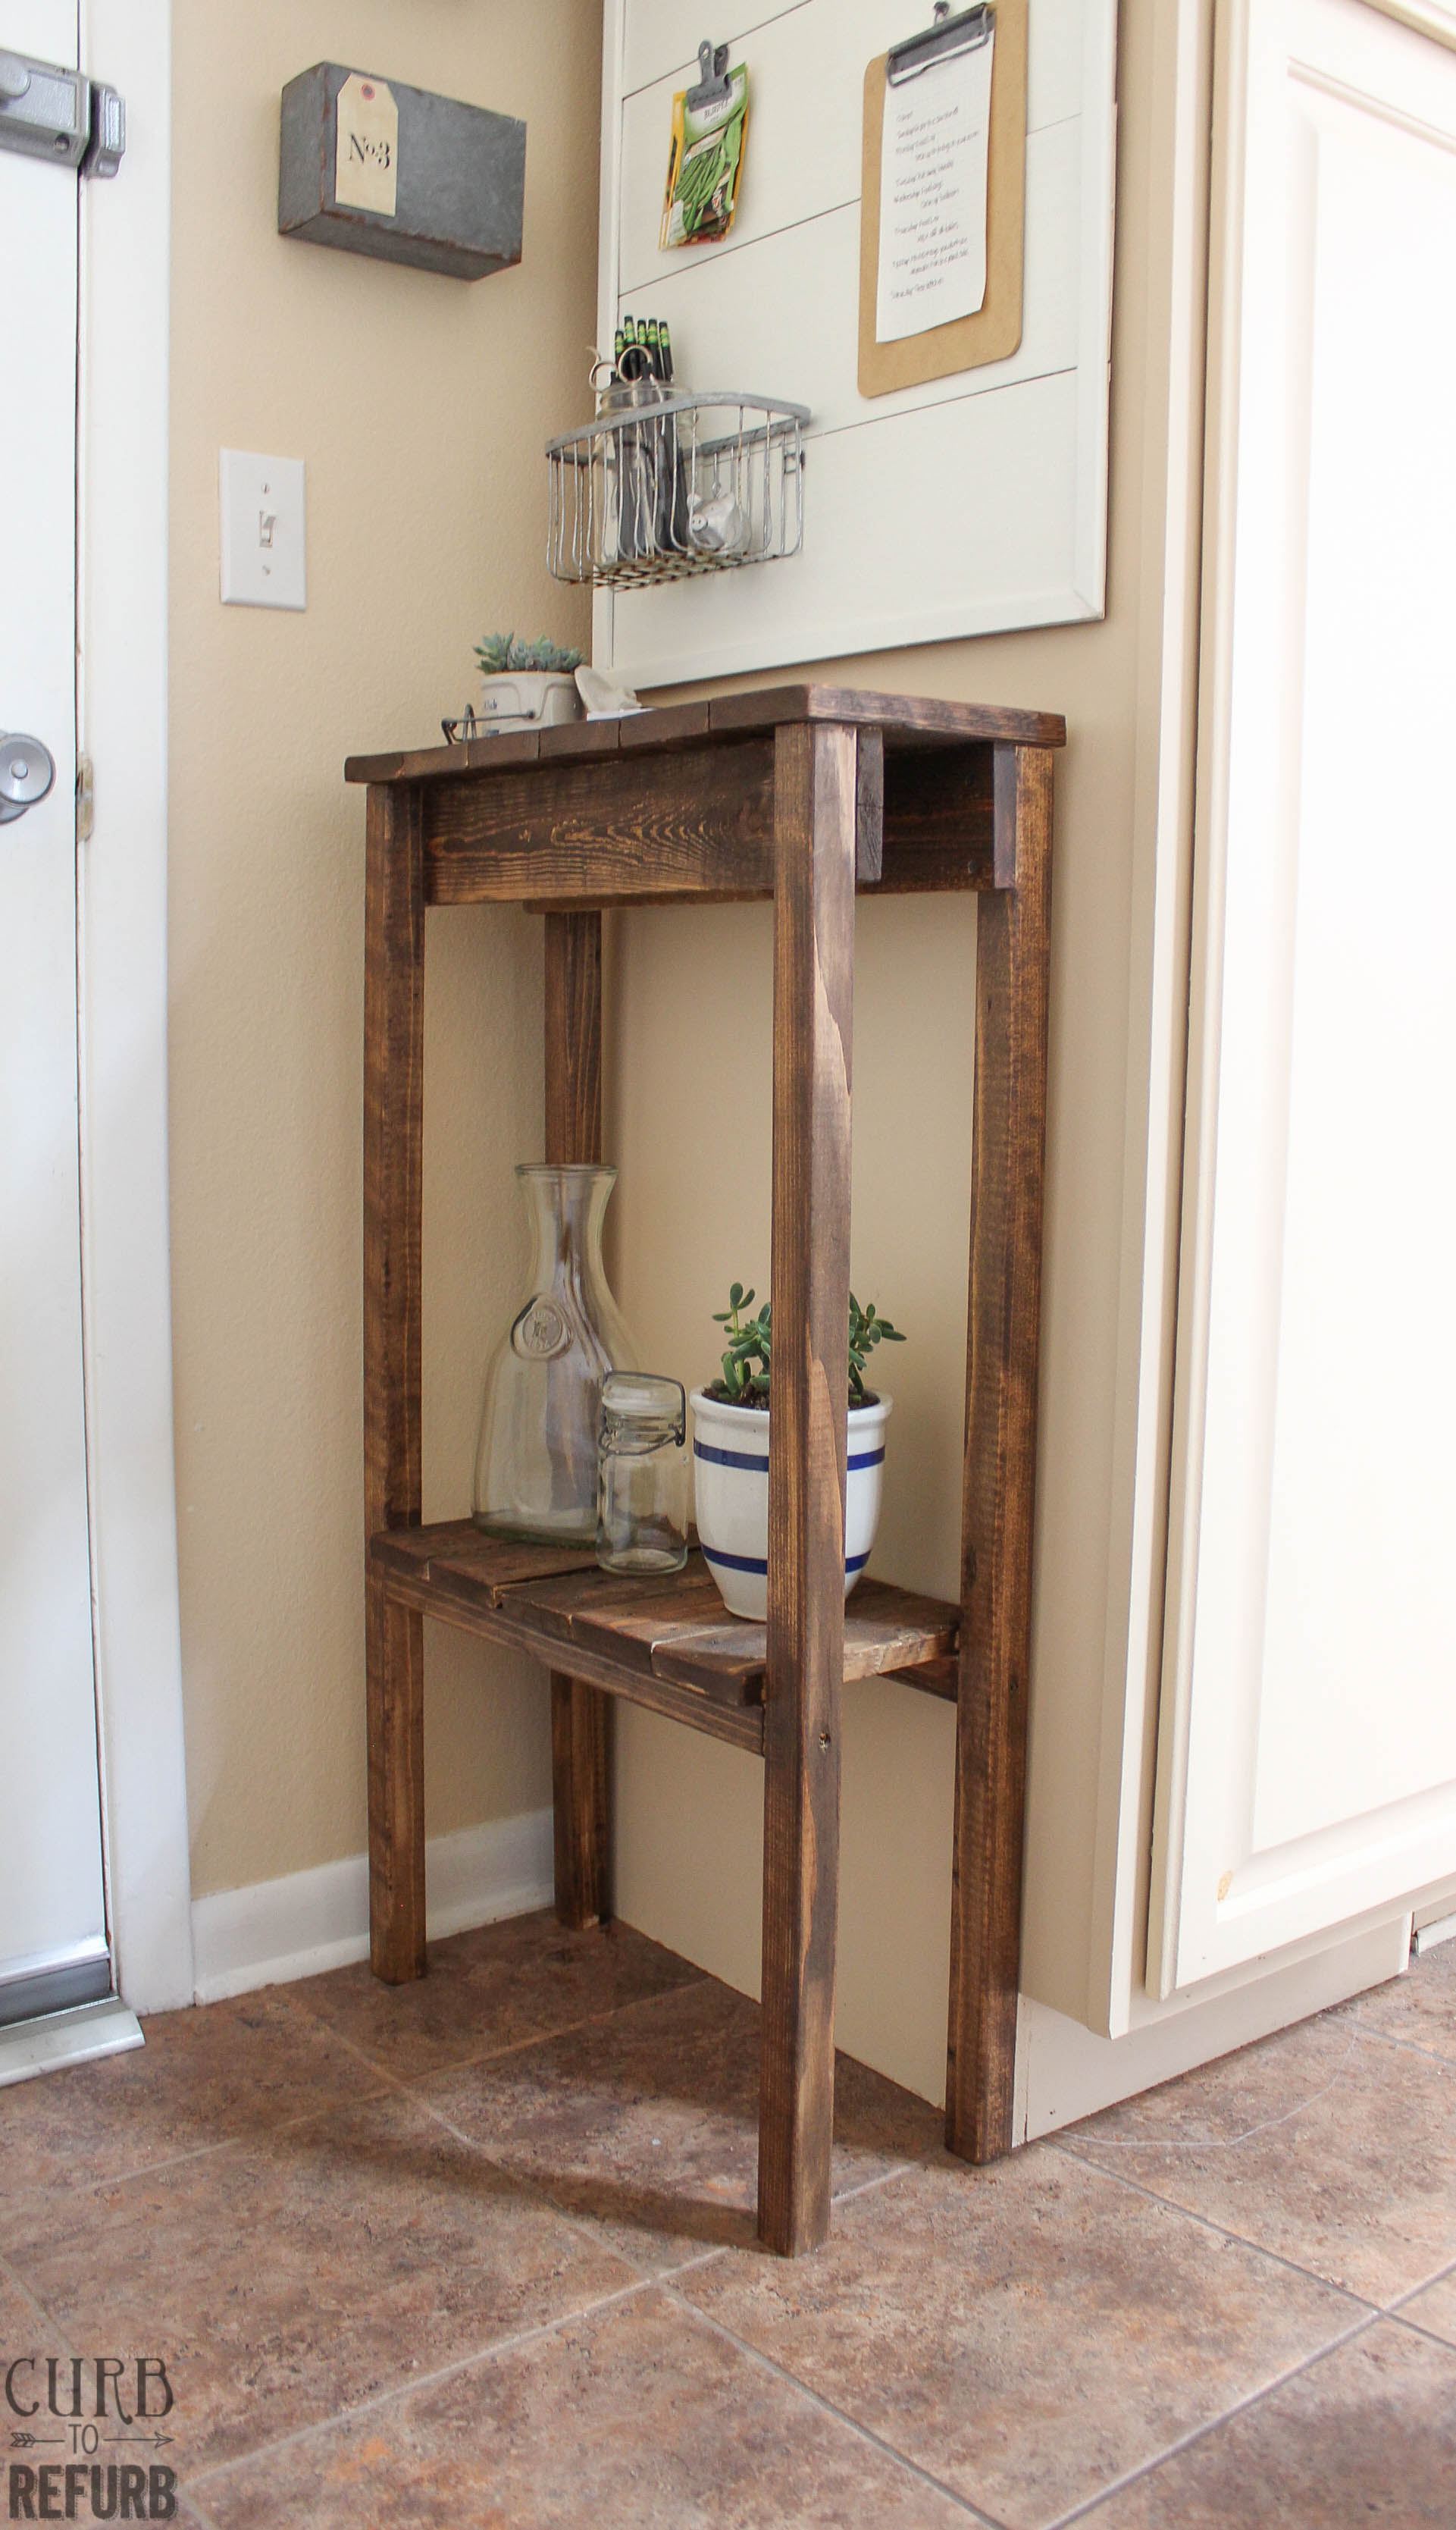 Diy crate console table - Diy Pallet Console Table By Curb To Refurb Featured On Remodelaholic